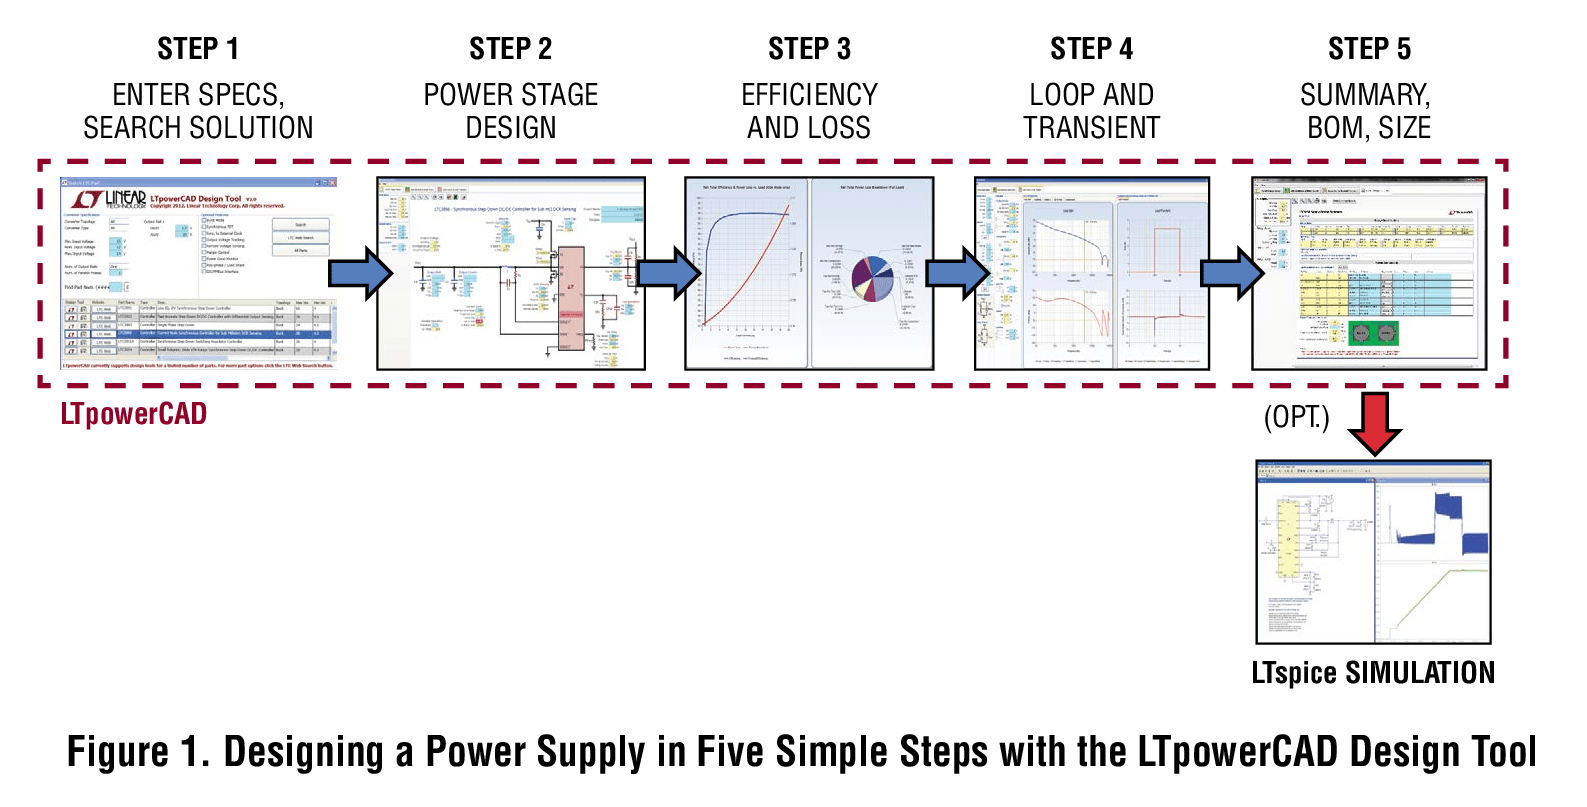 Designing Power Supply Parameters In Five Simple Steps